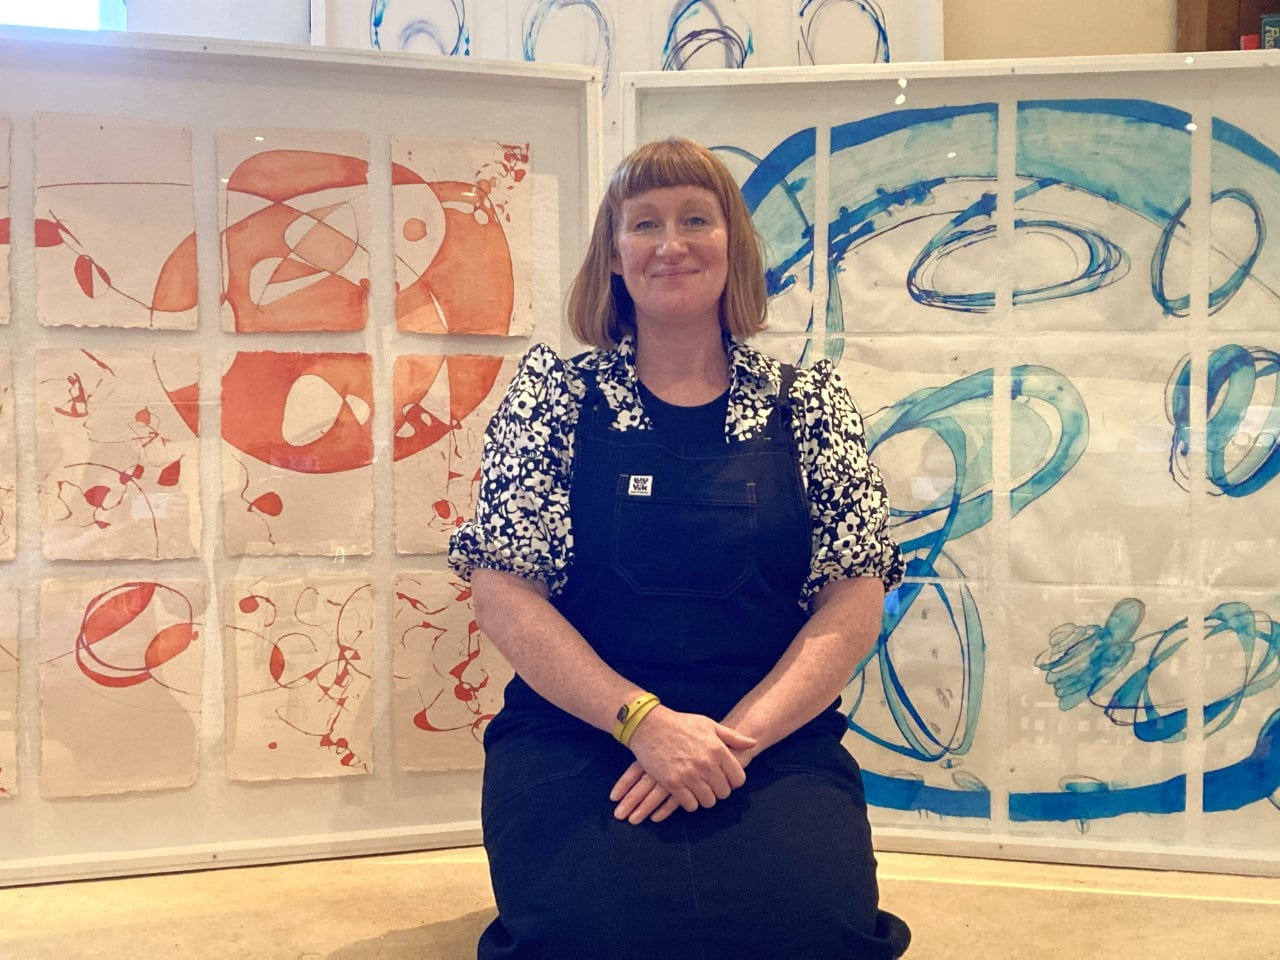 Petra Ingham pictured with some of the artwork that will be in display at Equilibirum.